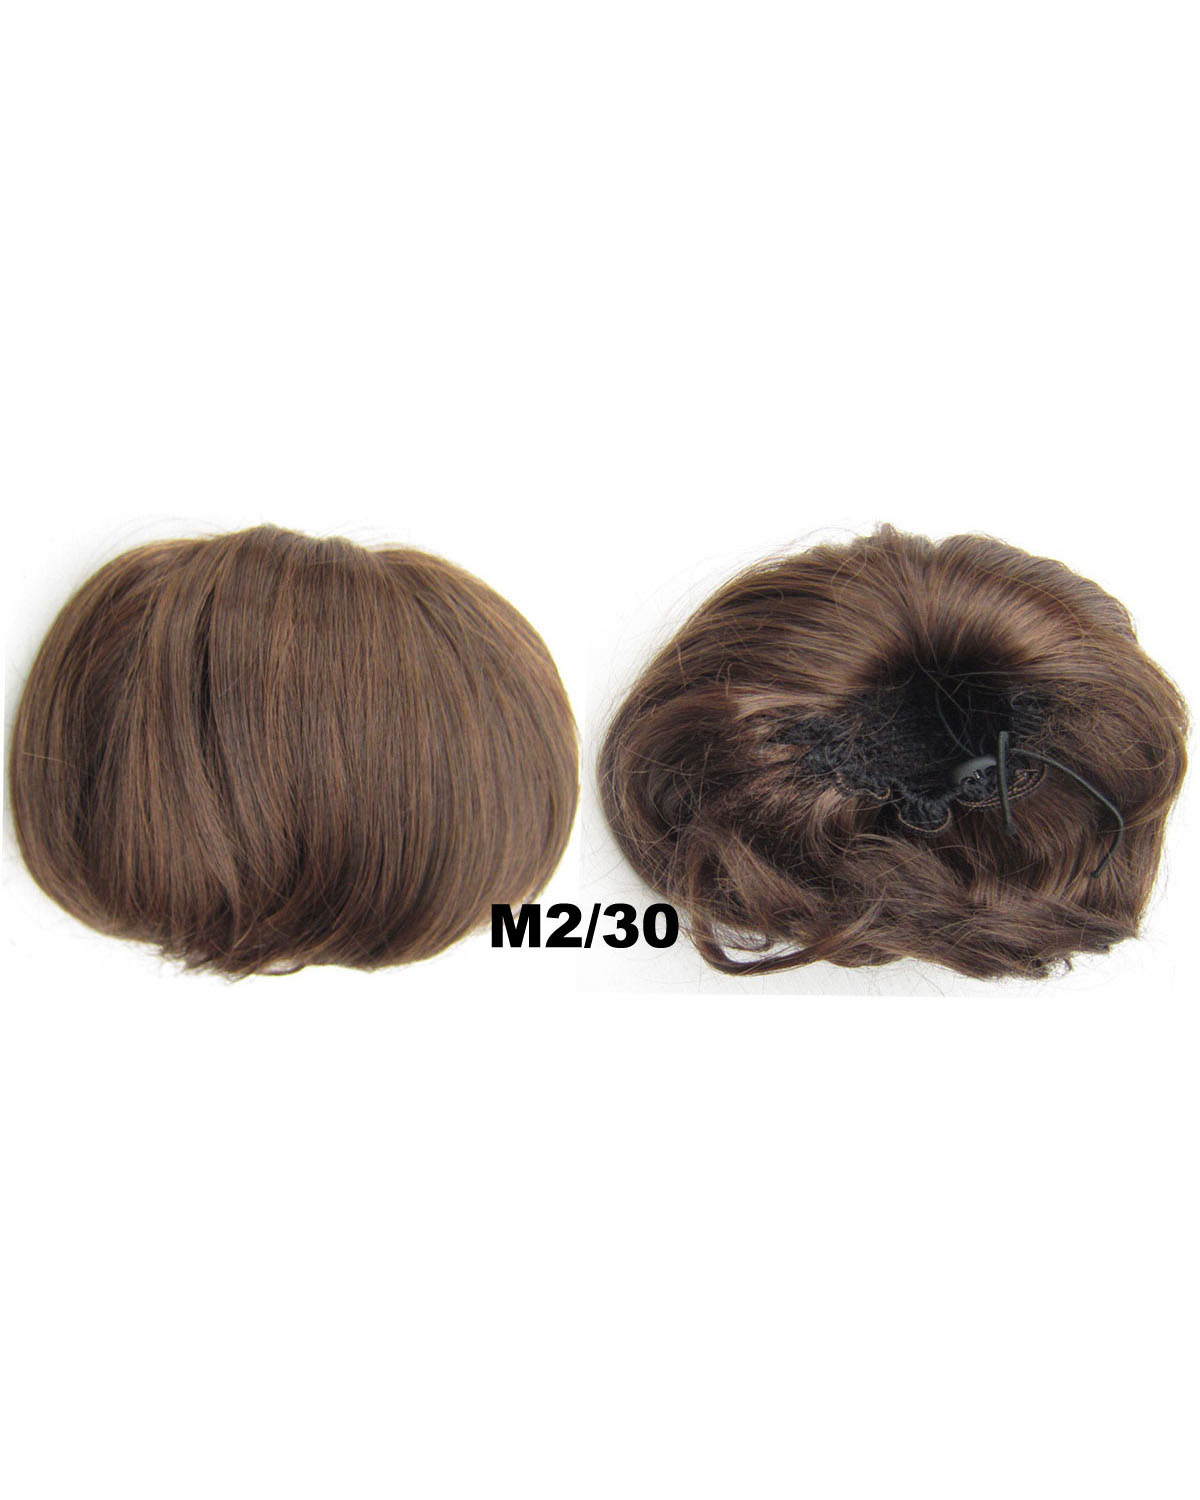 Ladies Wonderful Straight Short Hair Buns Drawstring Synthetic Hair Extension Bride Scrunchies M2/30